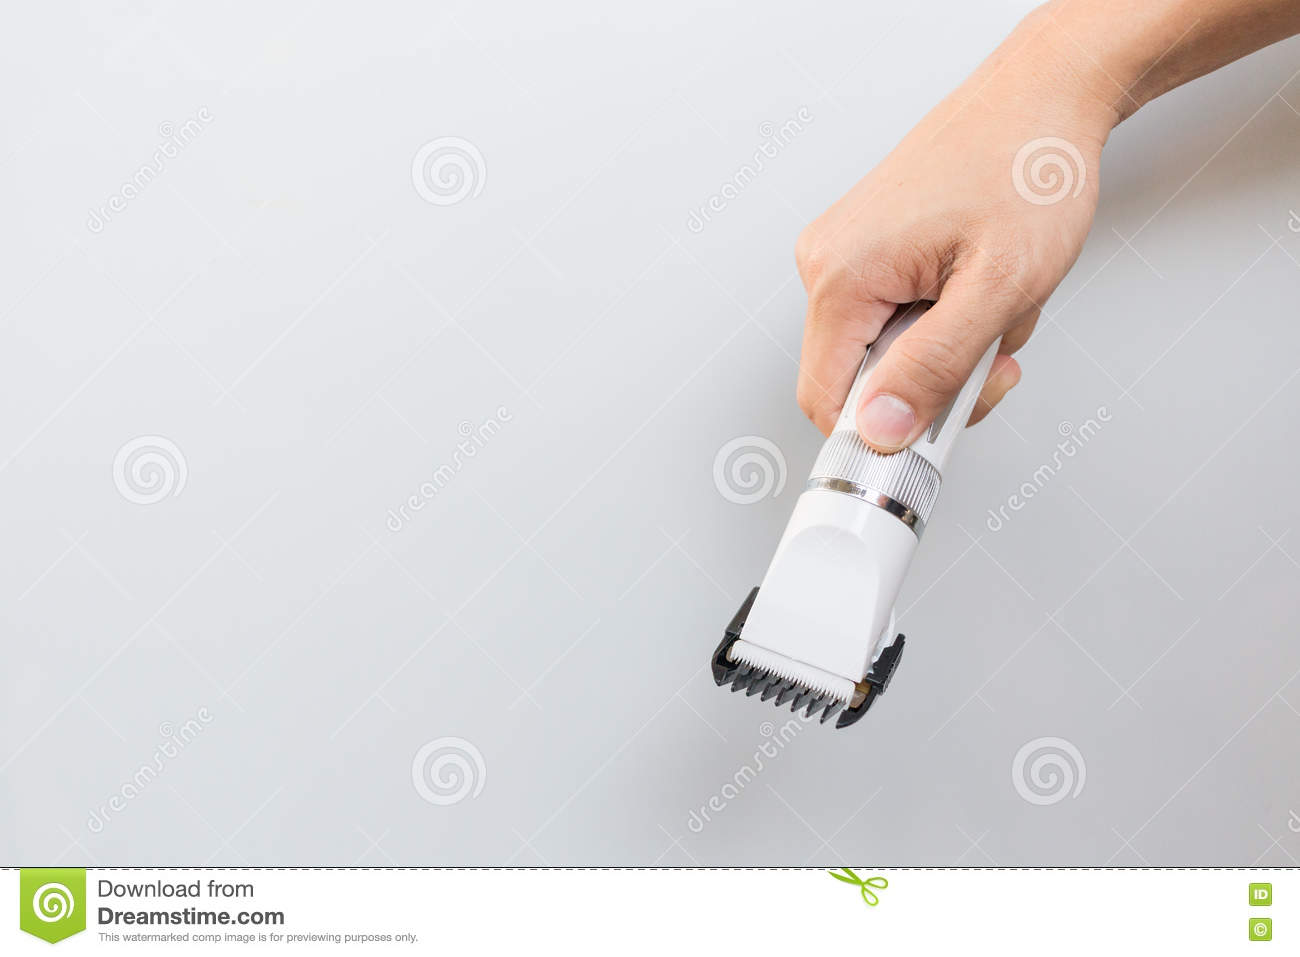 Hand Holding Hair Clippers Stock Photography